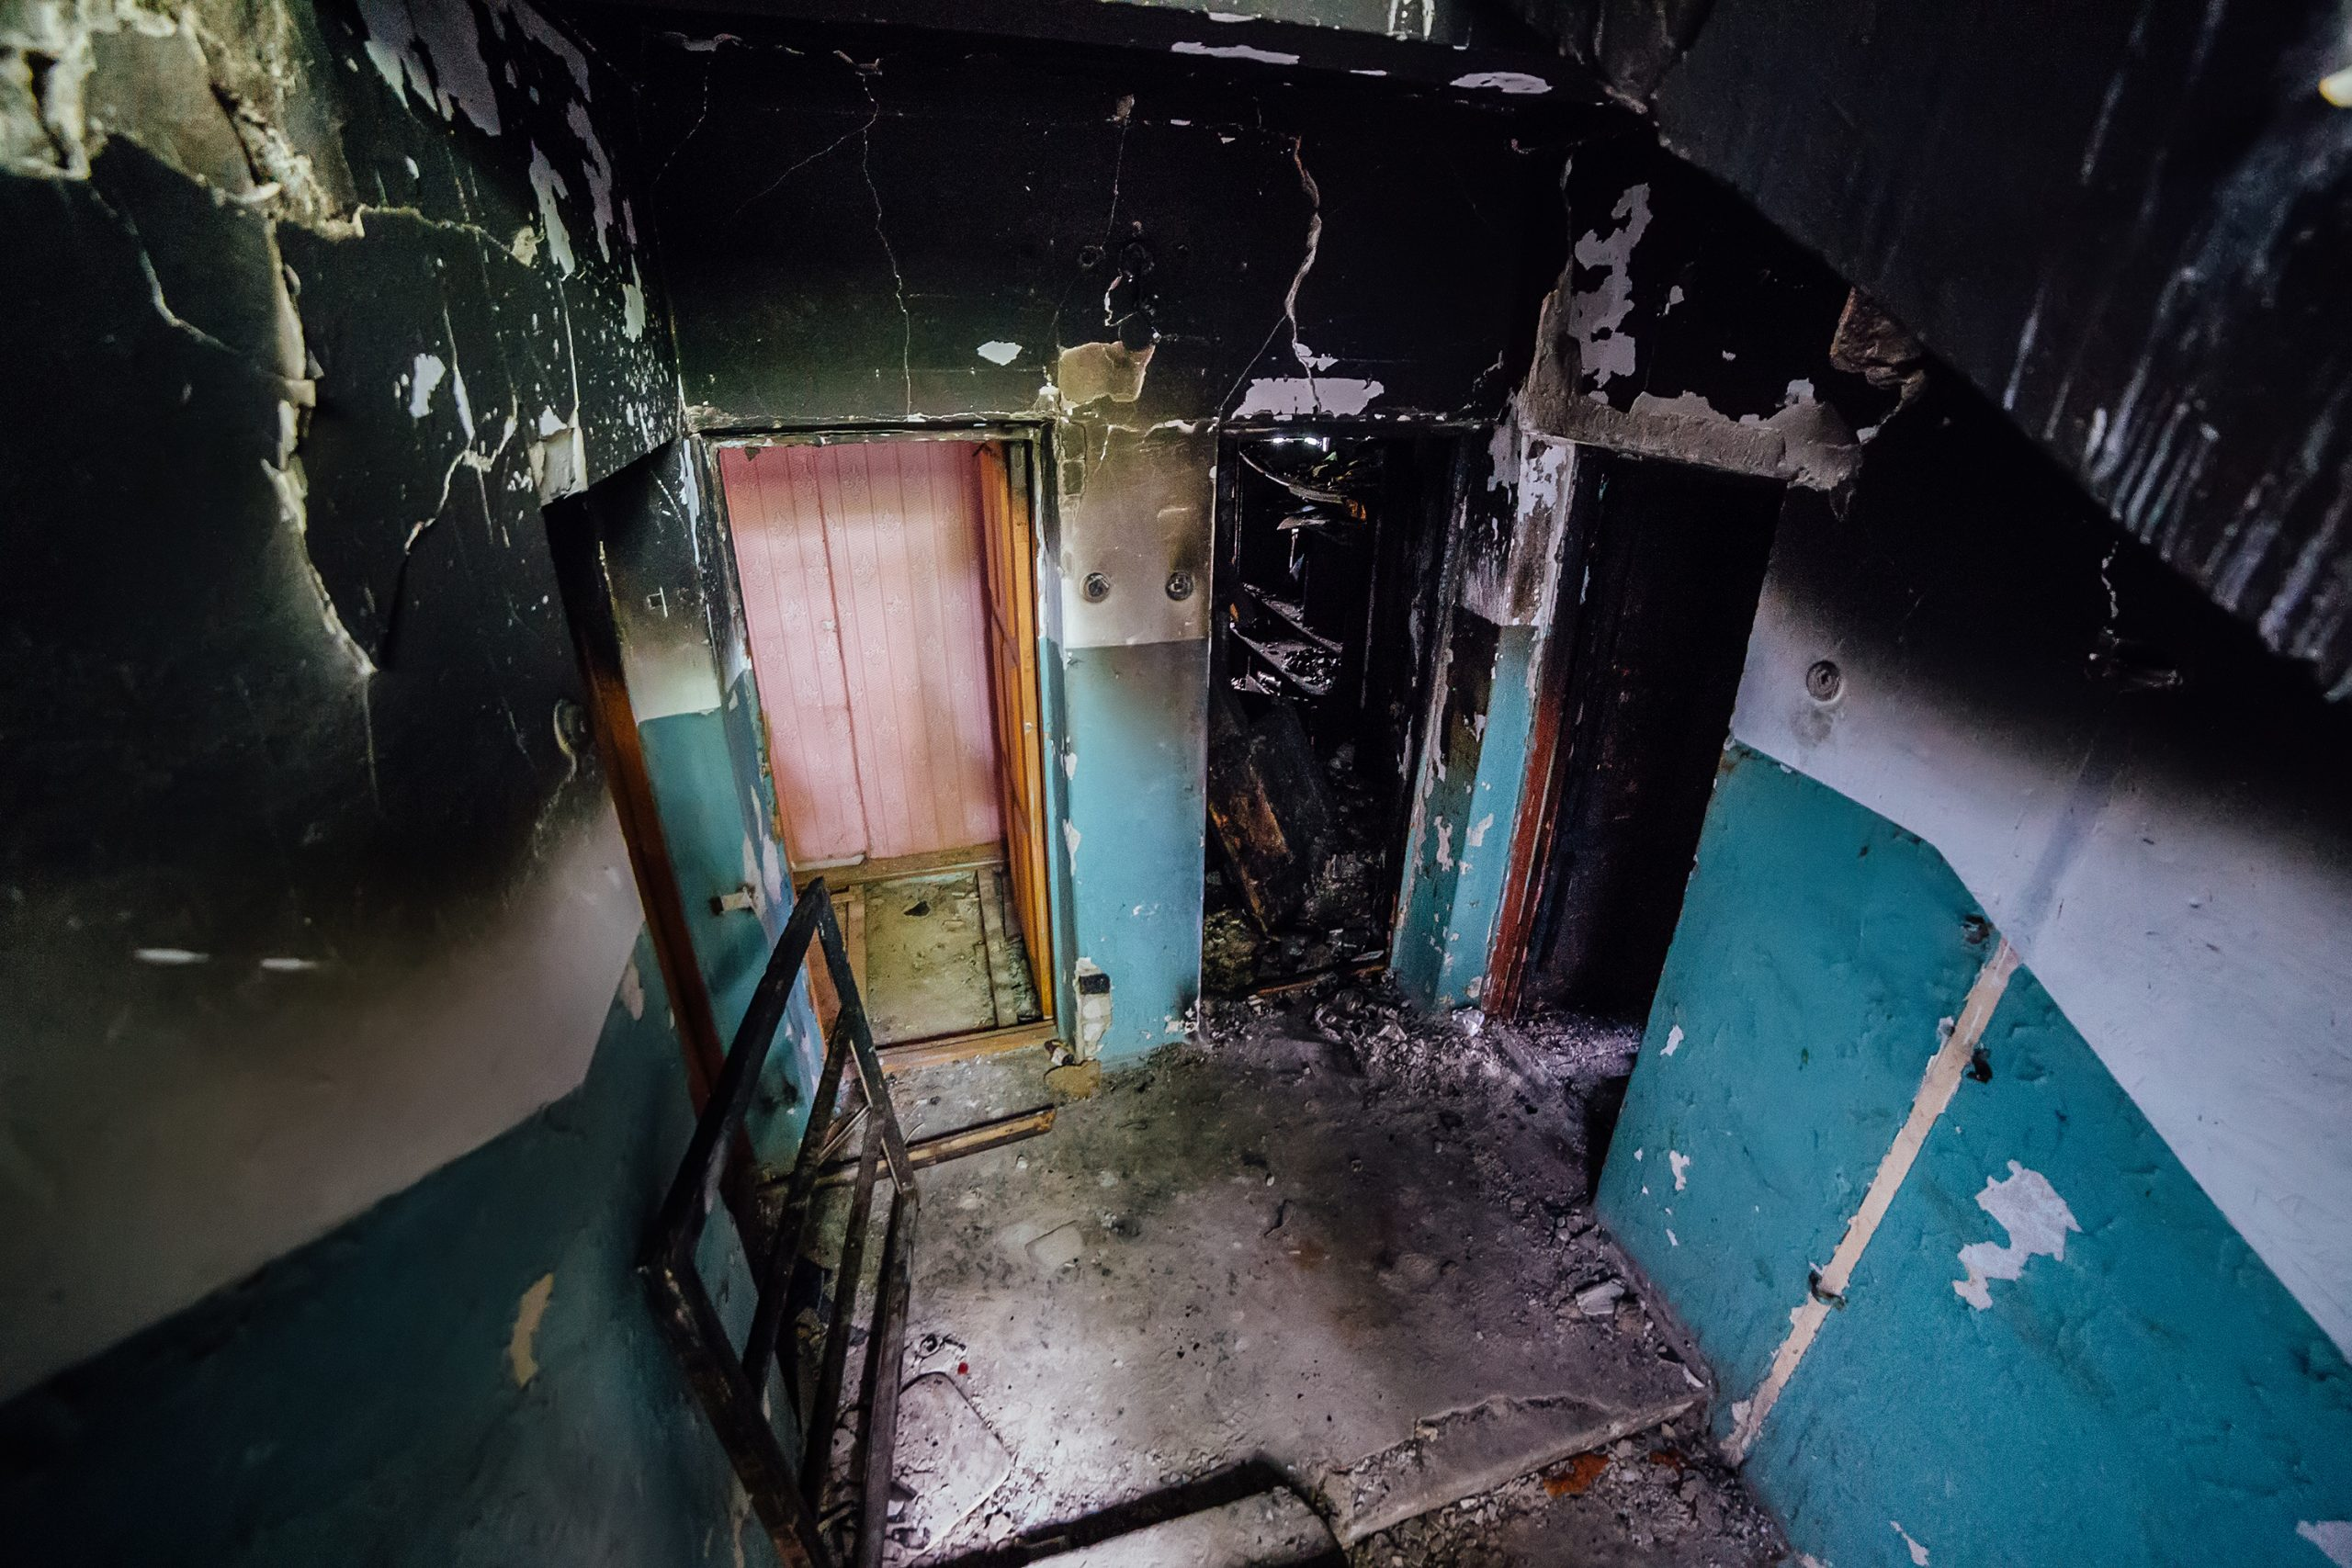 Consequences of fire in apartment building. Burnt staircase and doors, charred walls.